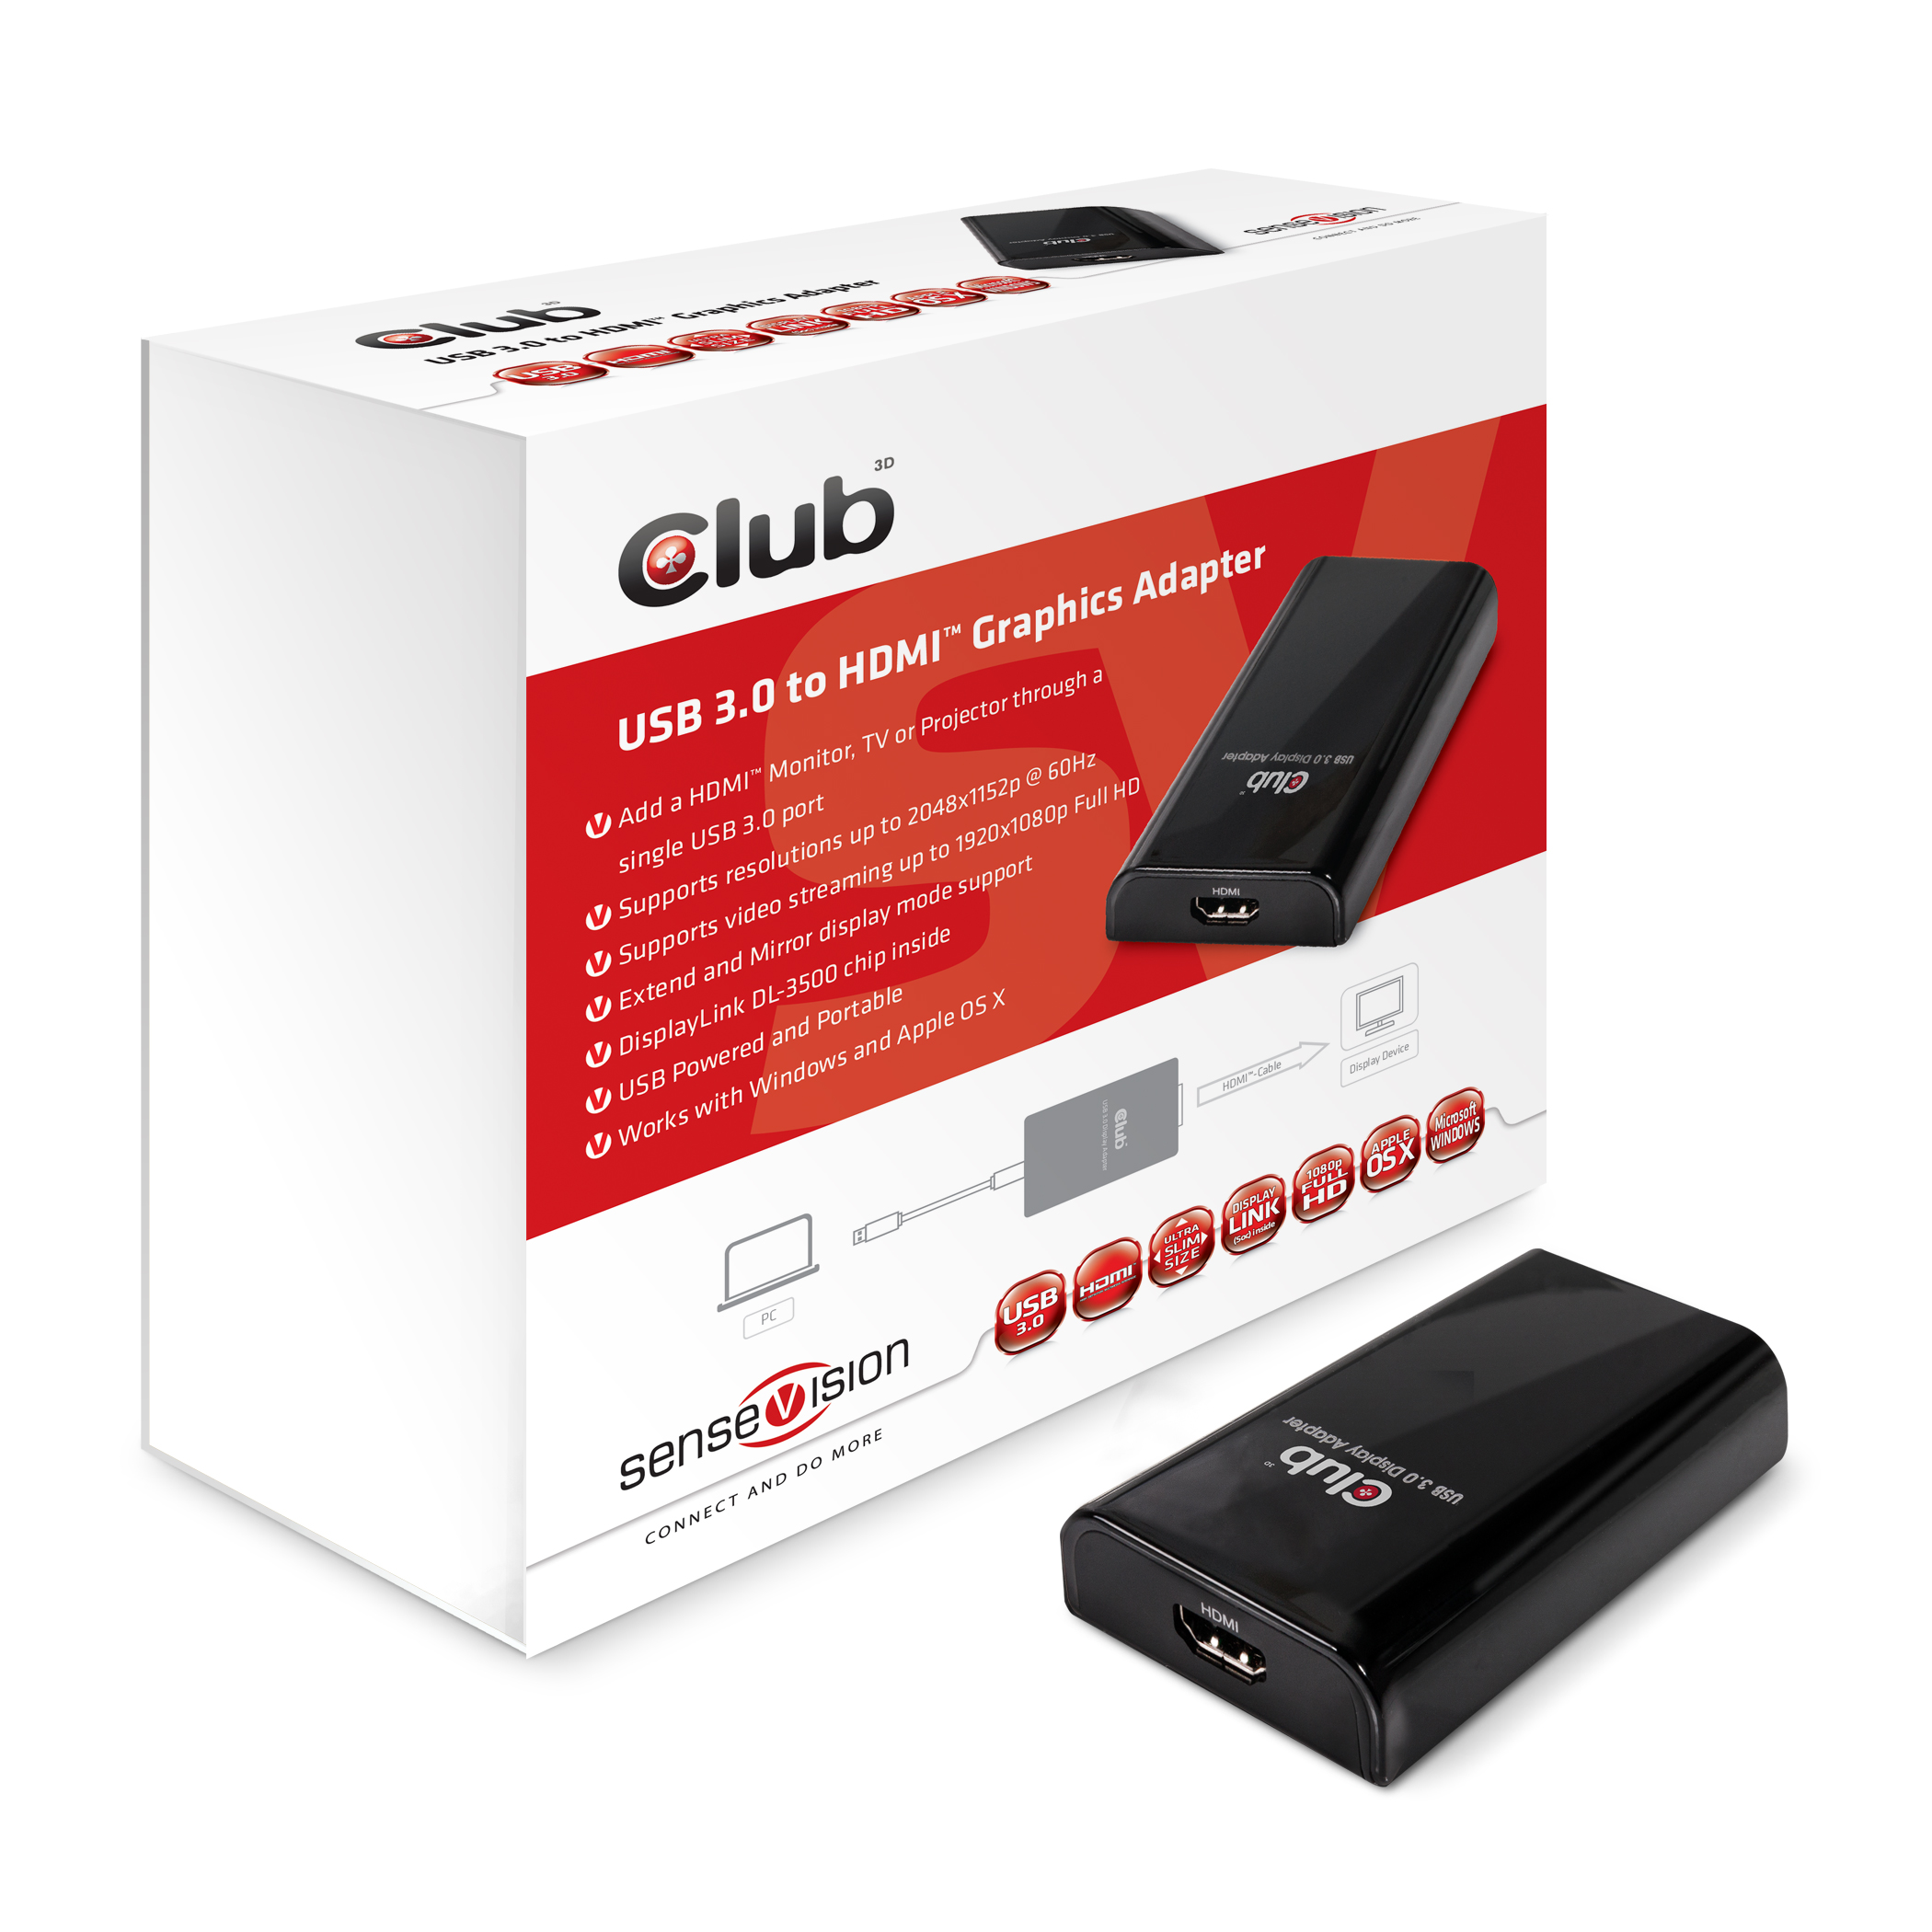 CLUB 3D USB 3.0 TO HDMI ADAPTER